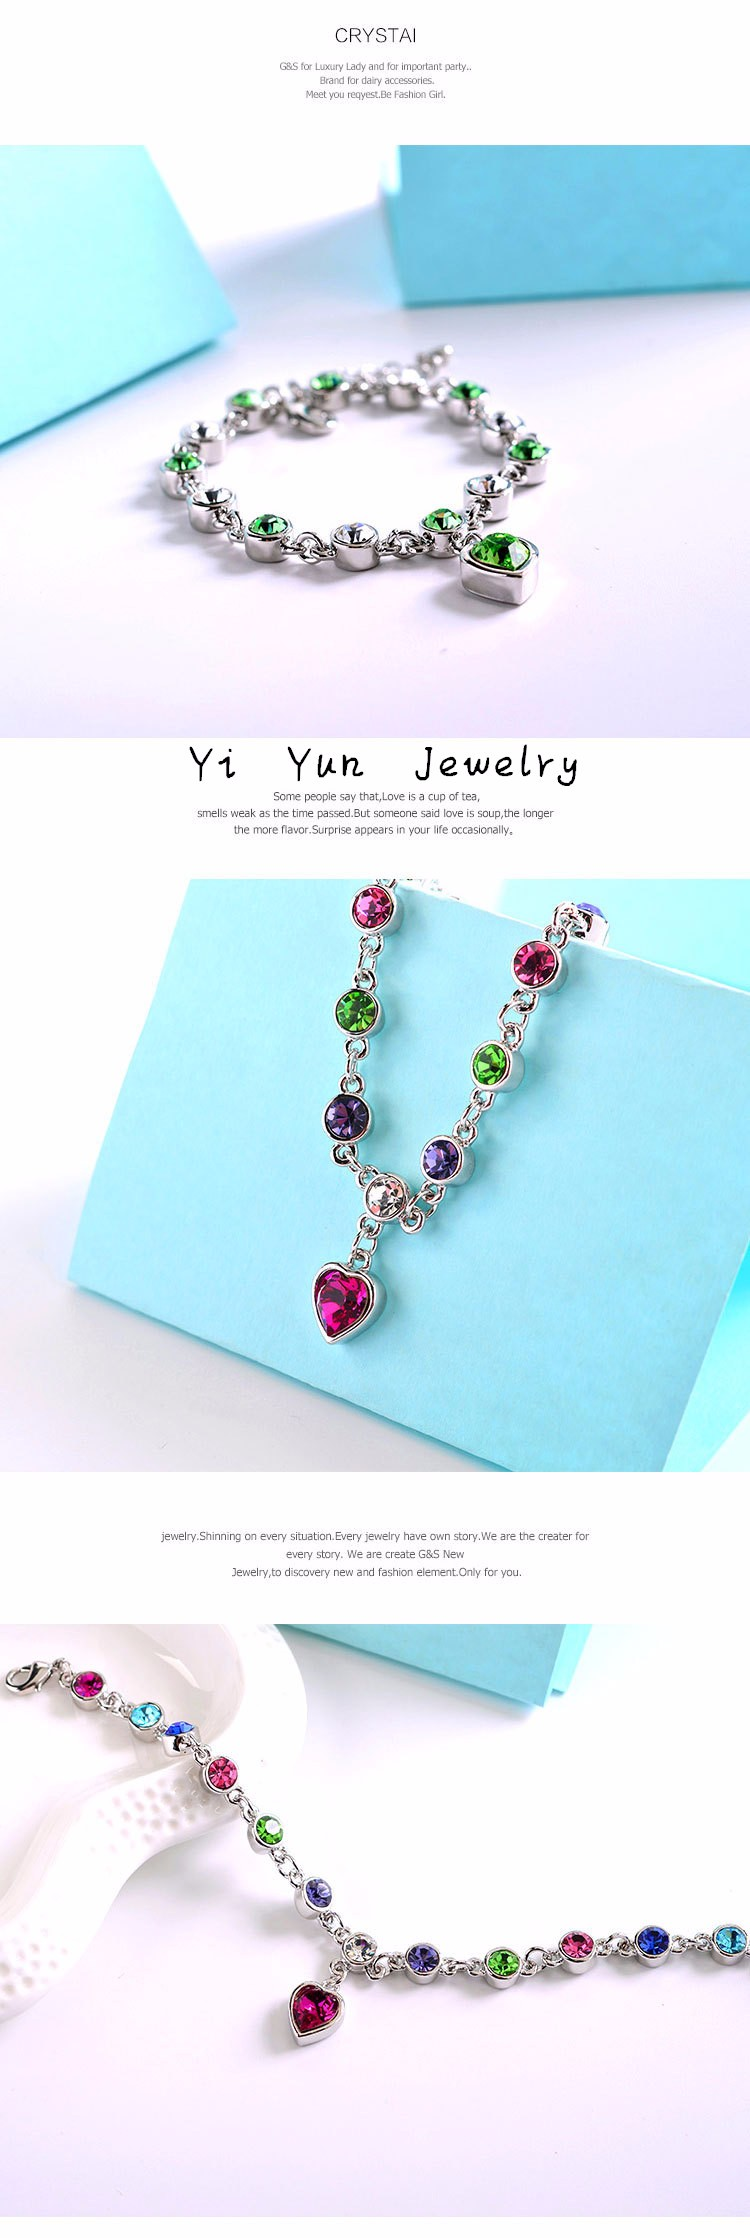 LYIYUNQ Fashion Bracelet Hot Wedding Female Heart Crystal Bracelets For Women Luxury Temperament Silver-Color Fine Jewelry Gift 8